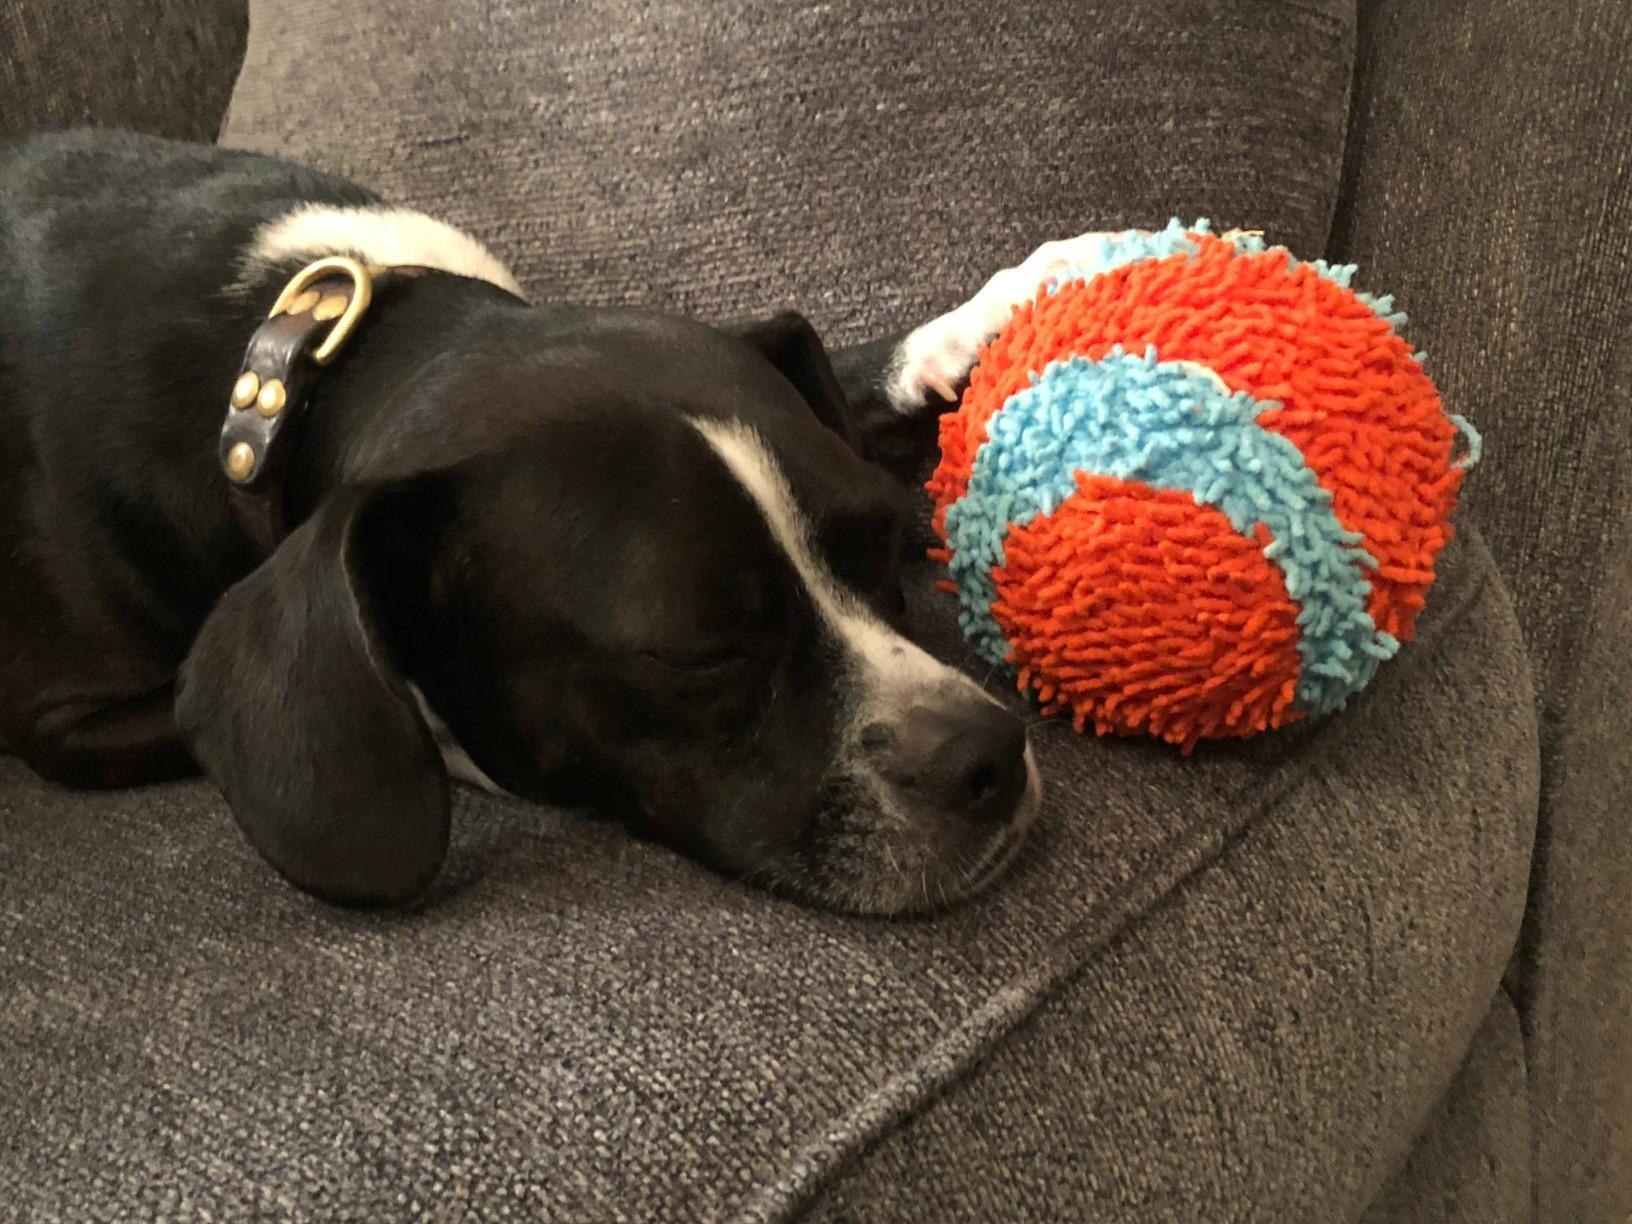 The ball lying next to a sleeping pup